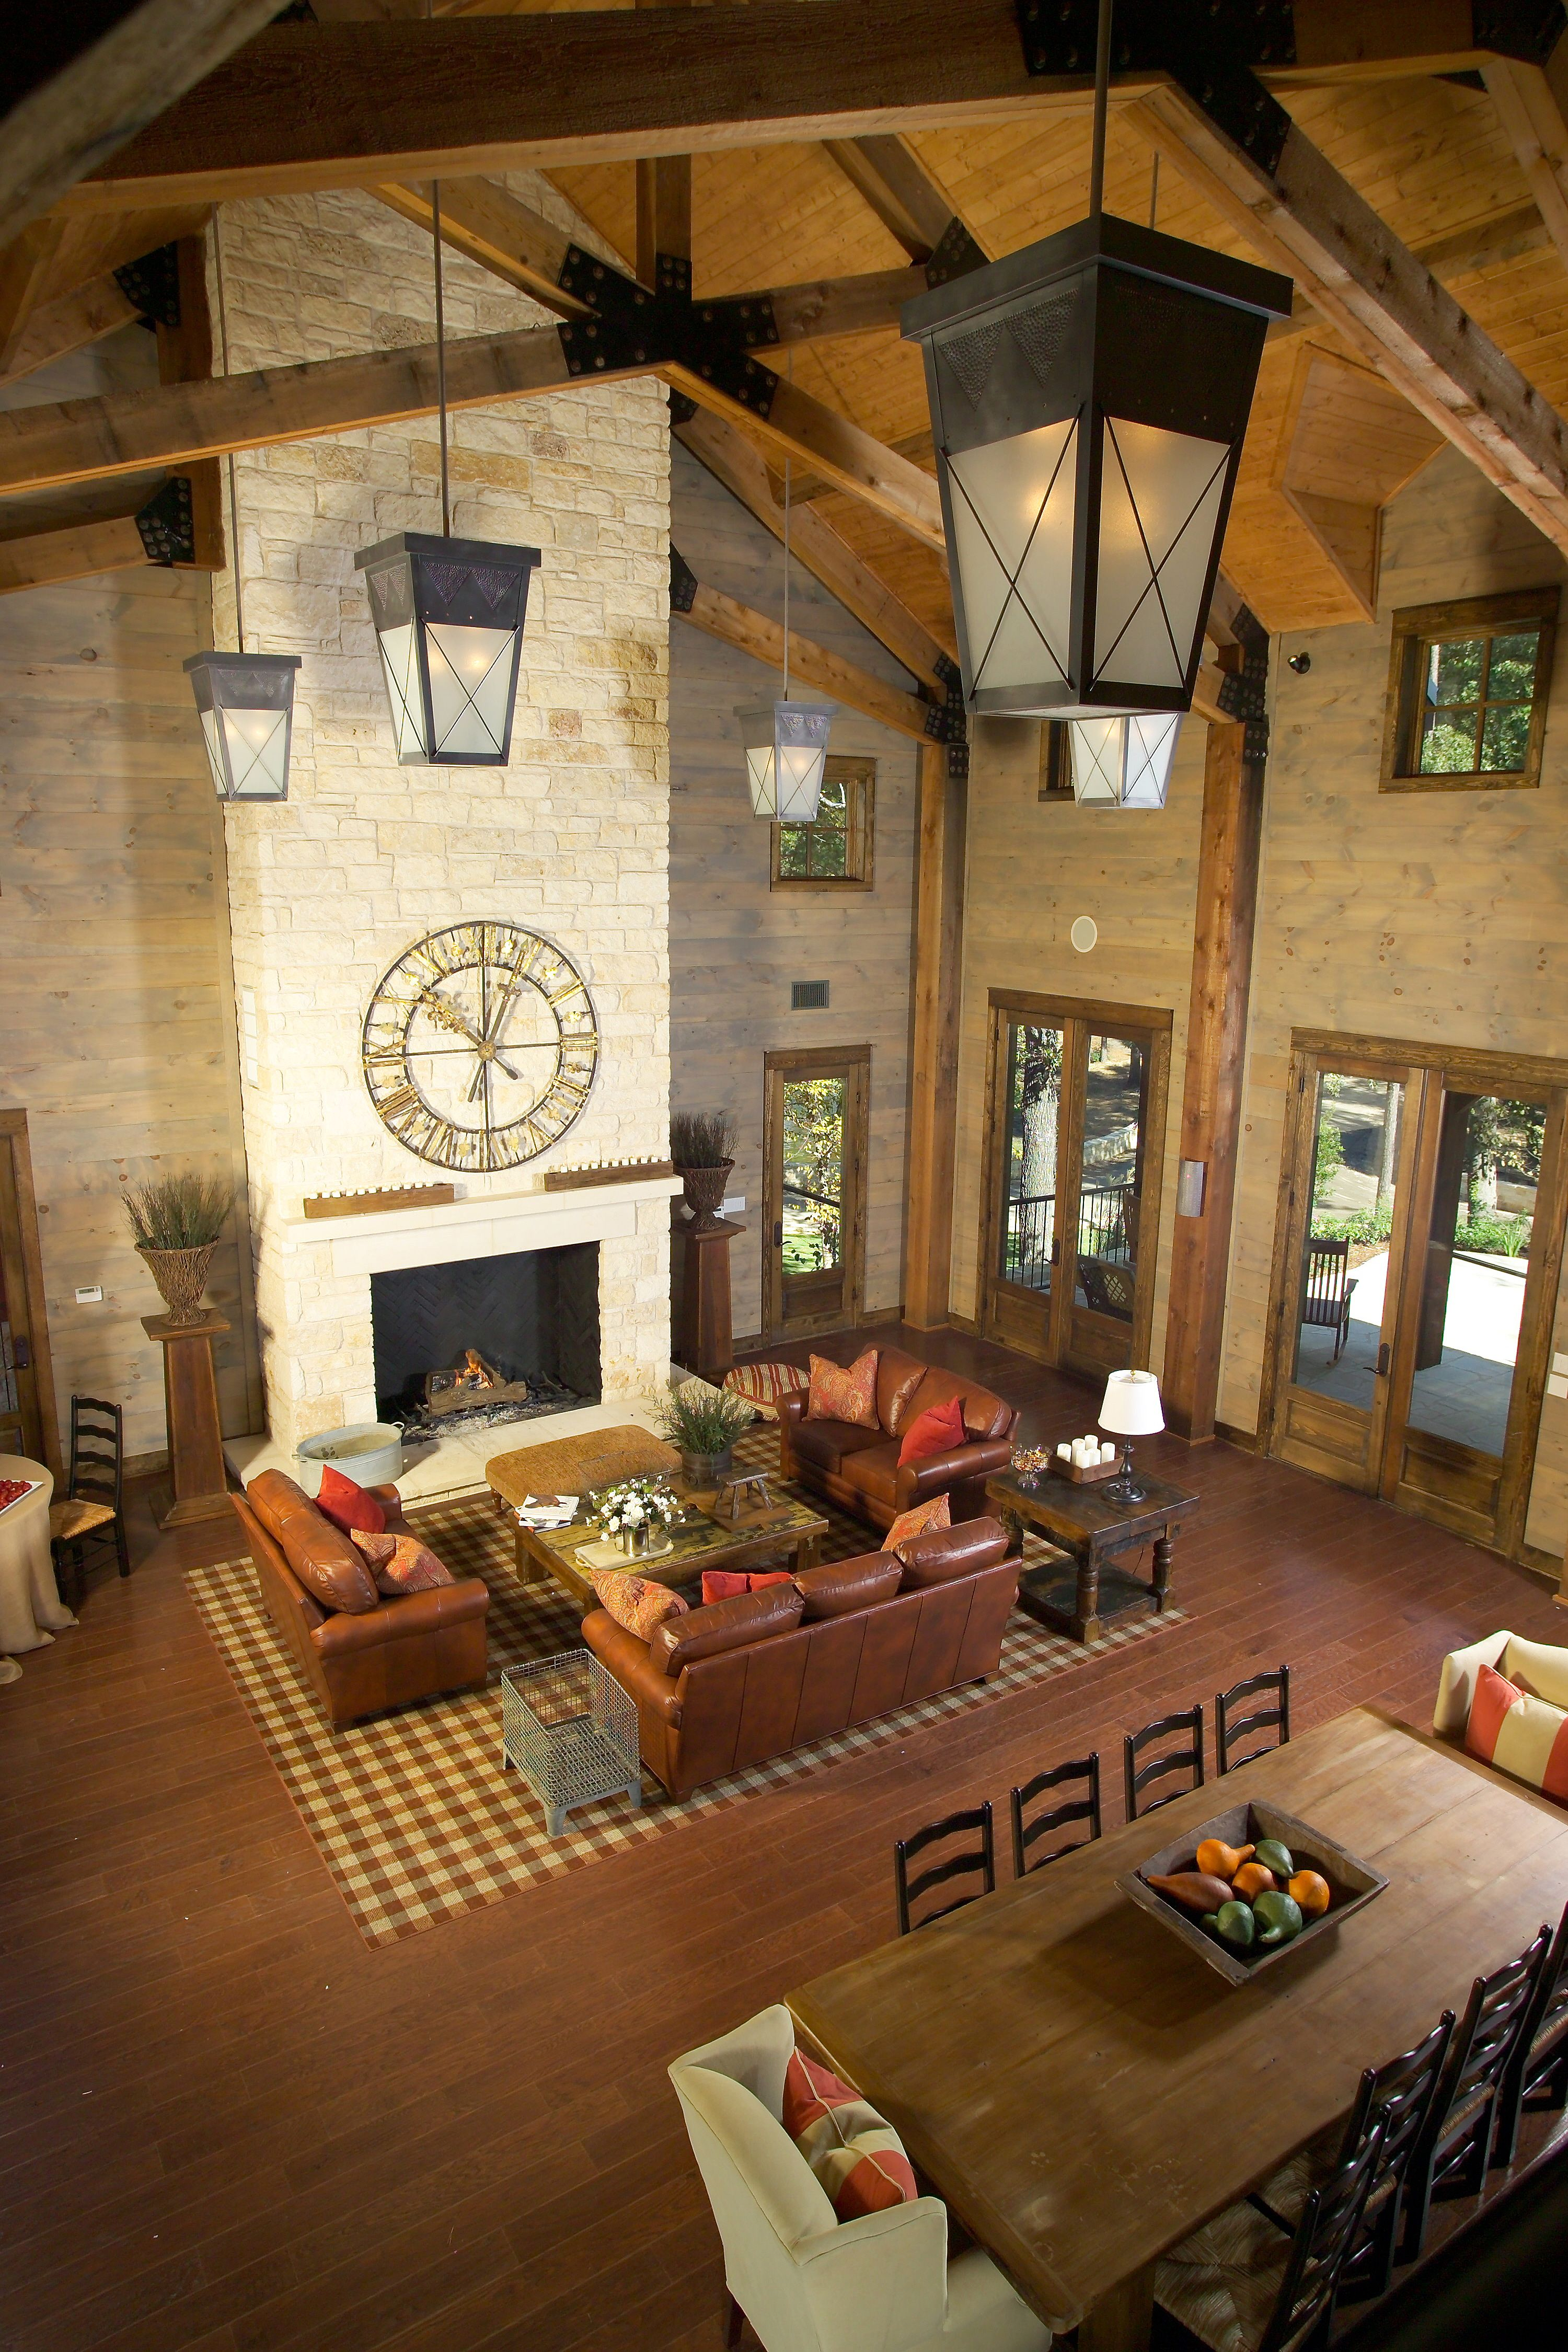 Fireplaces Great Rooms And Room: Great Layout. Just What We Plan, On Either Side Of Fireplace Archway Doors With O…